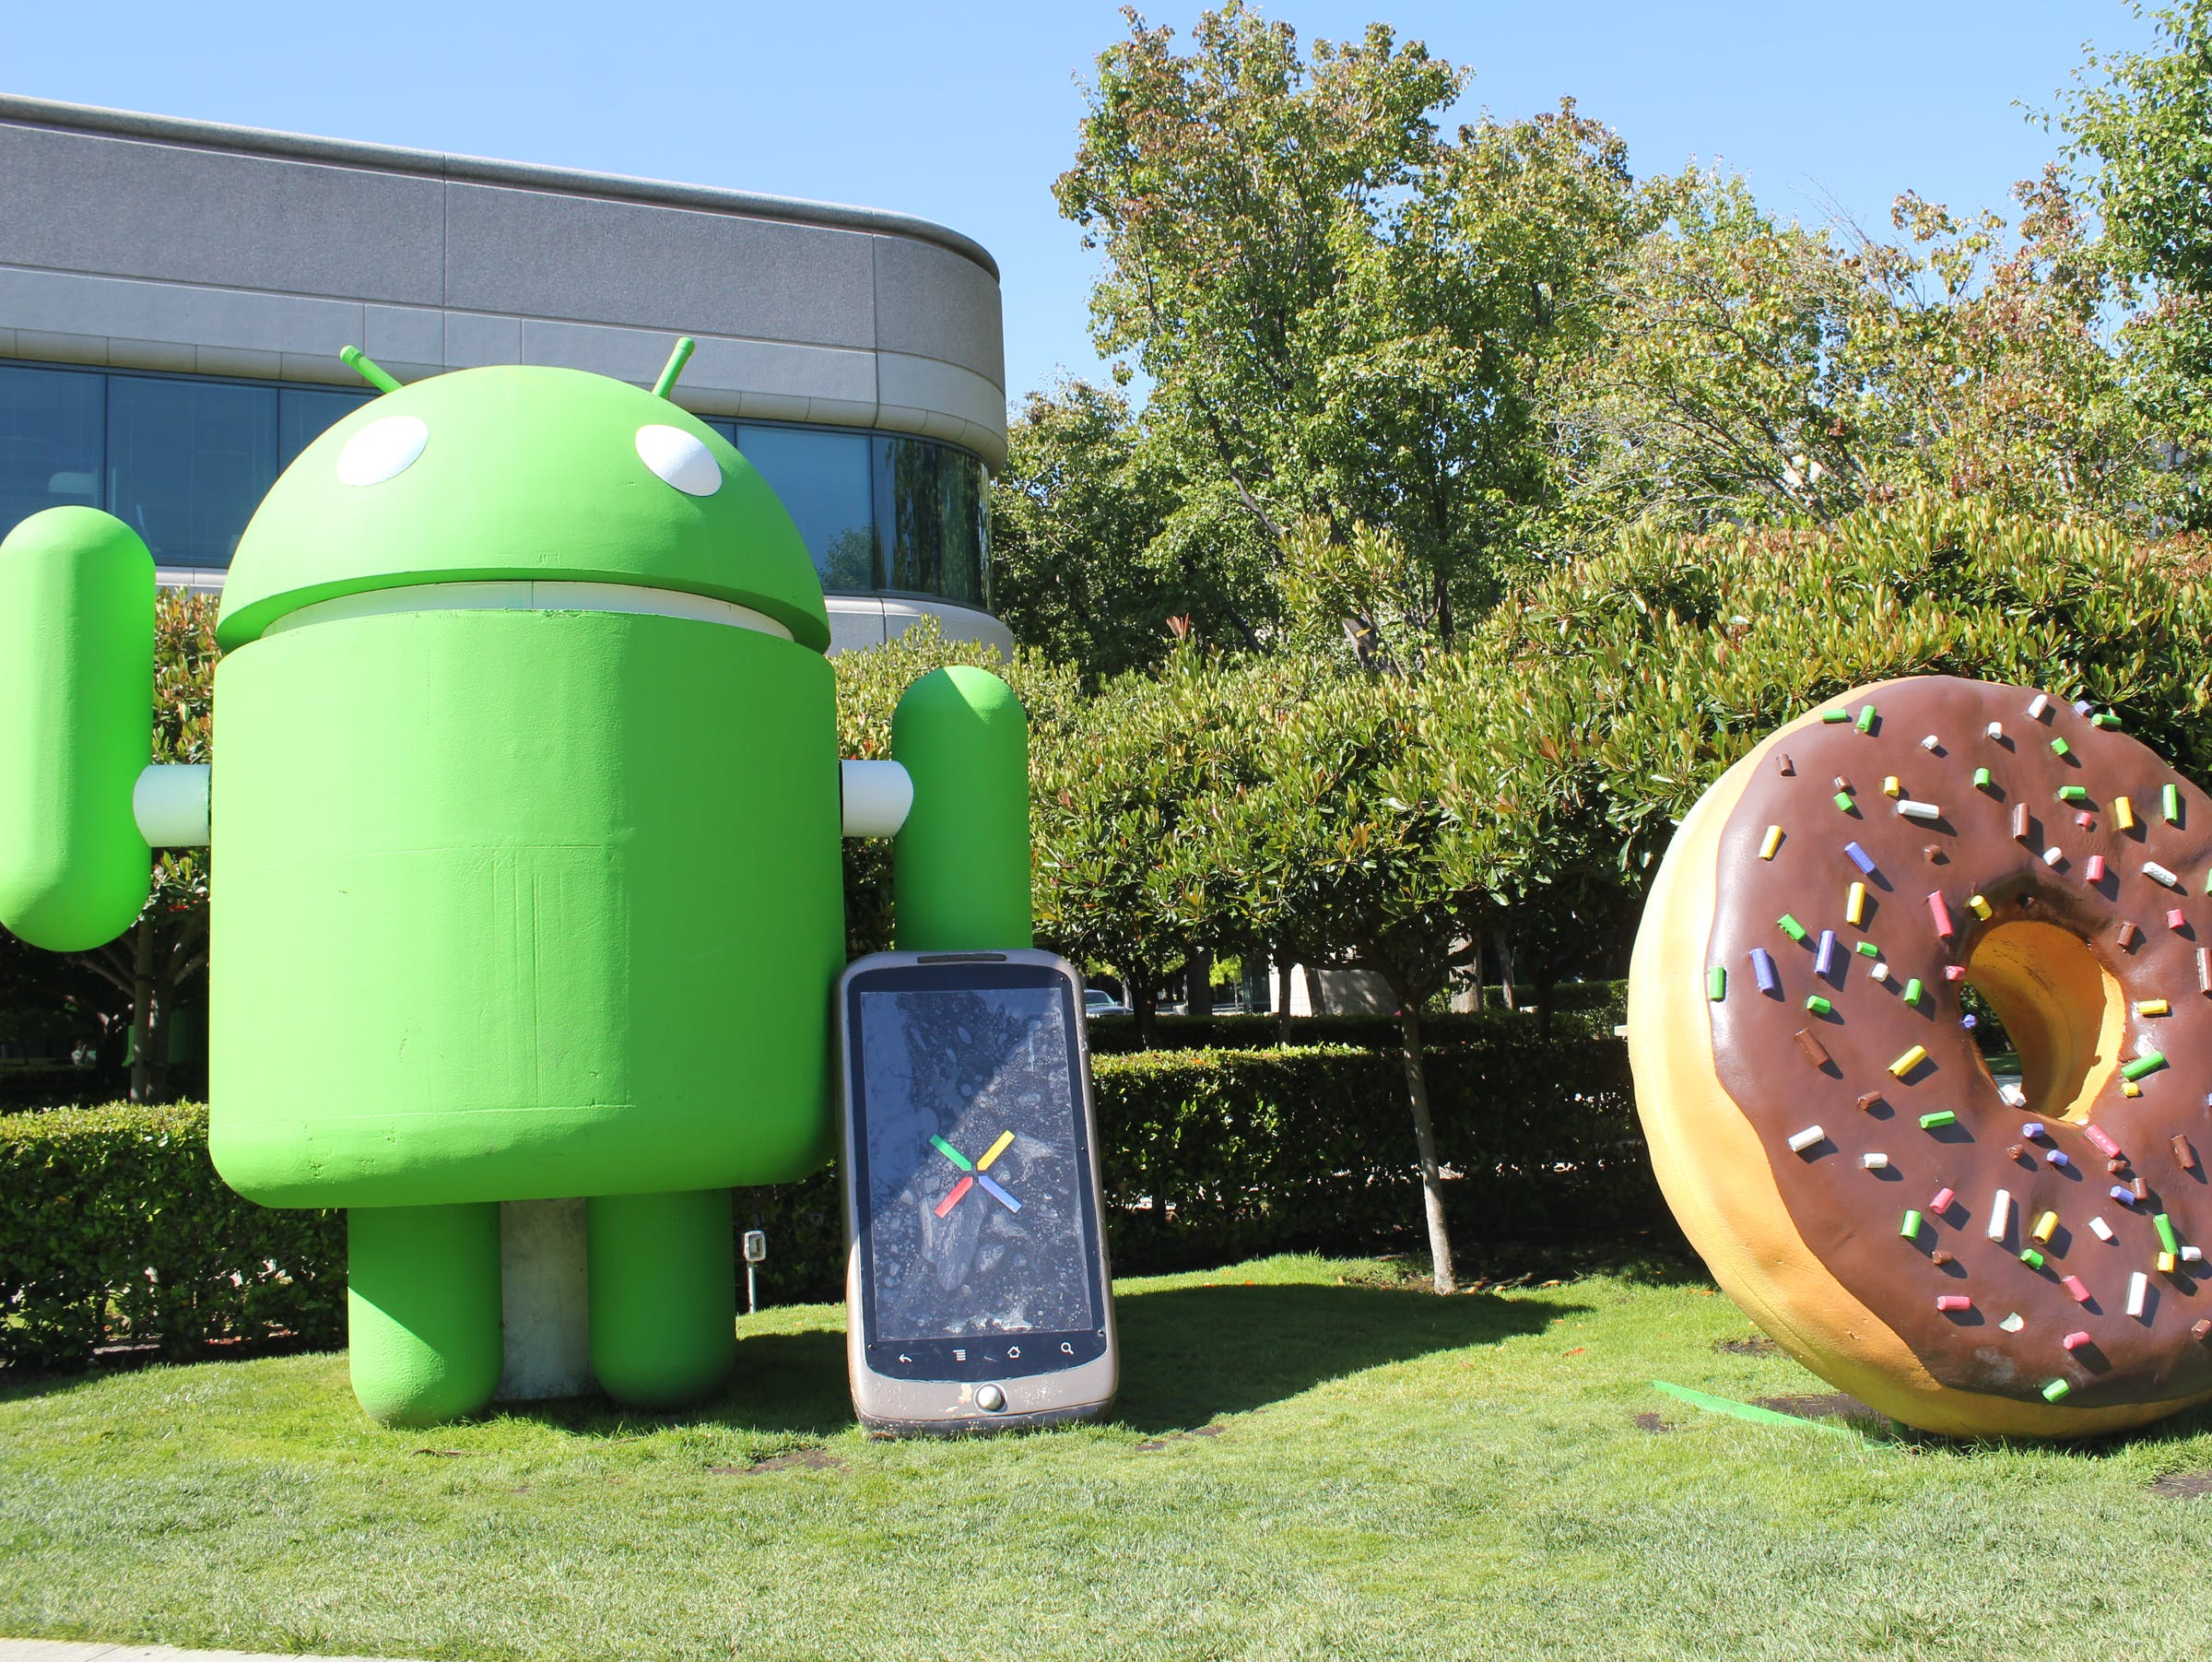 8 Technological Landmarks in Silicon Valley You Can Visit